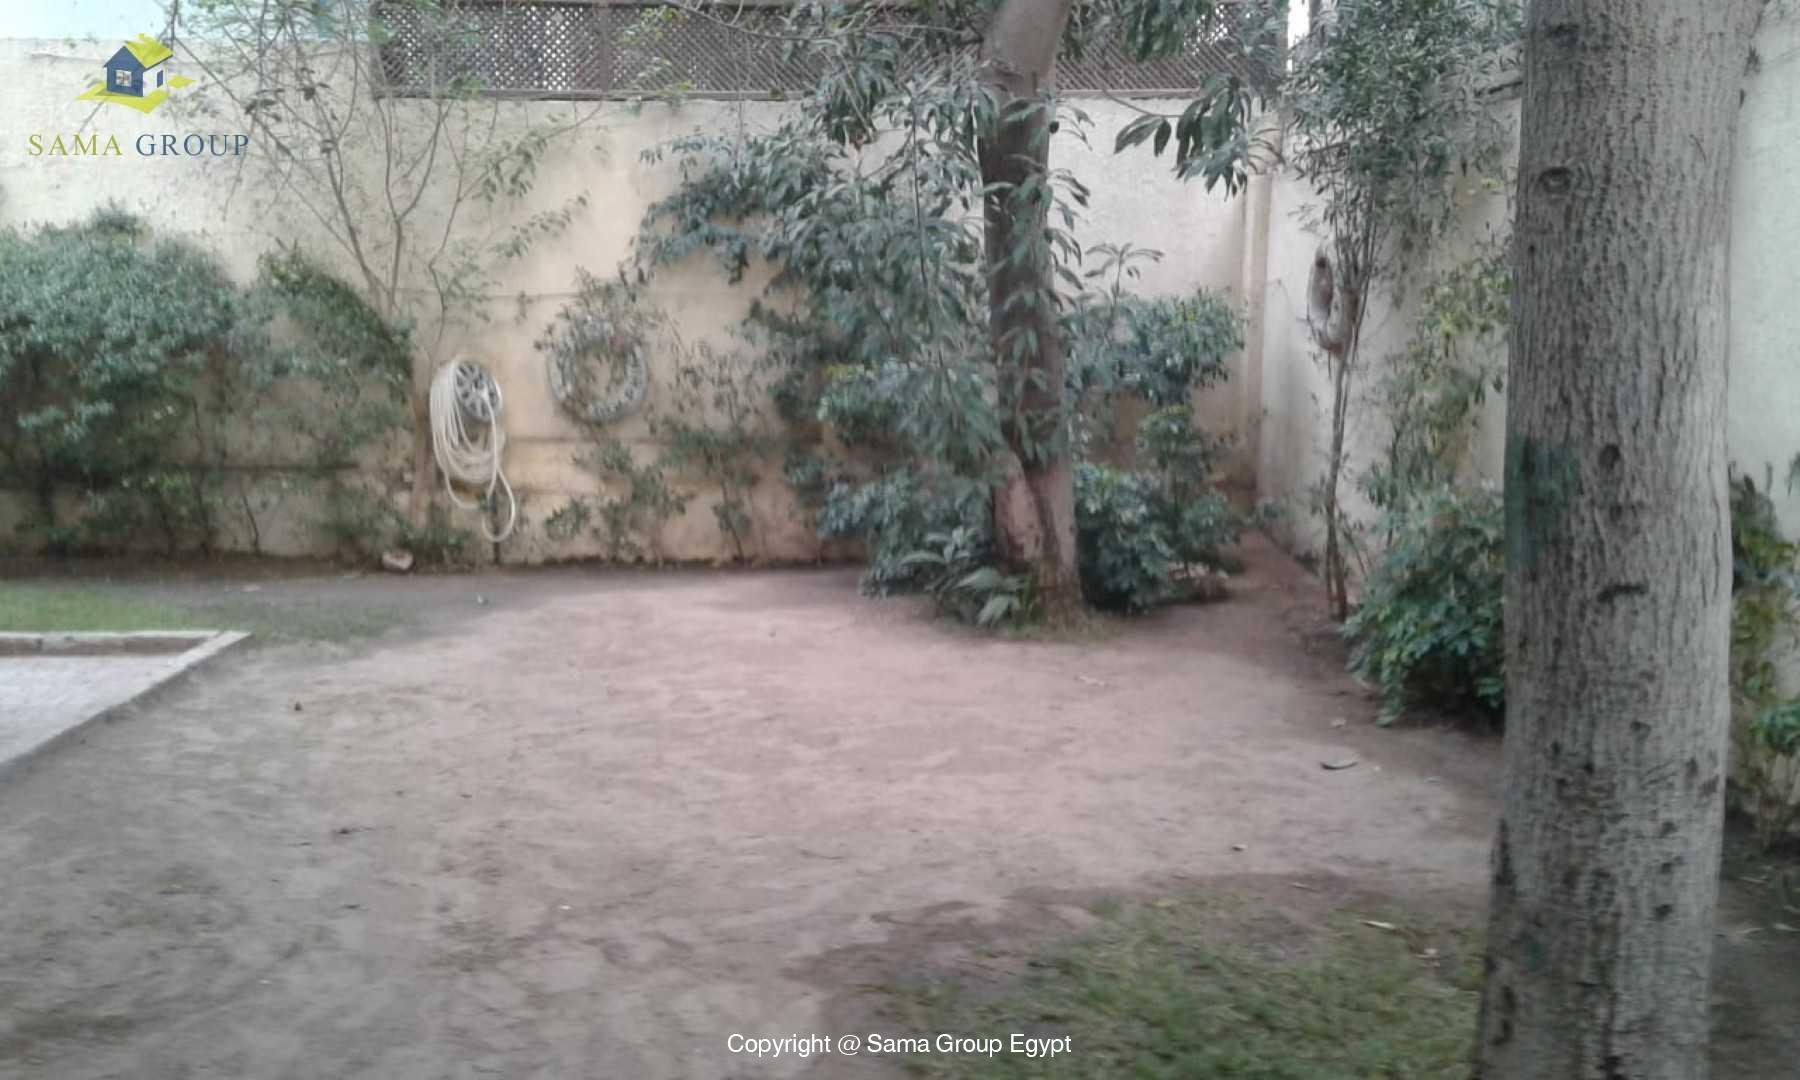 Villa Commercial For Rent In Maadi,Semi furnished,Villa NO #15